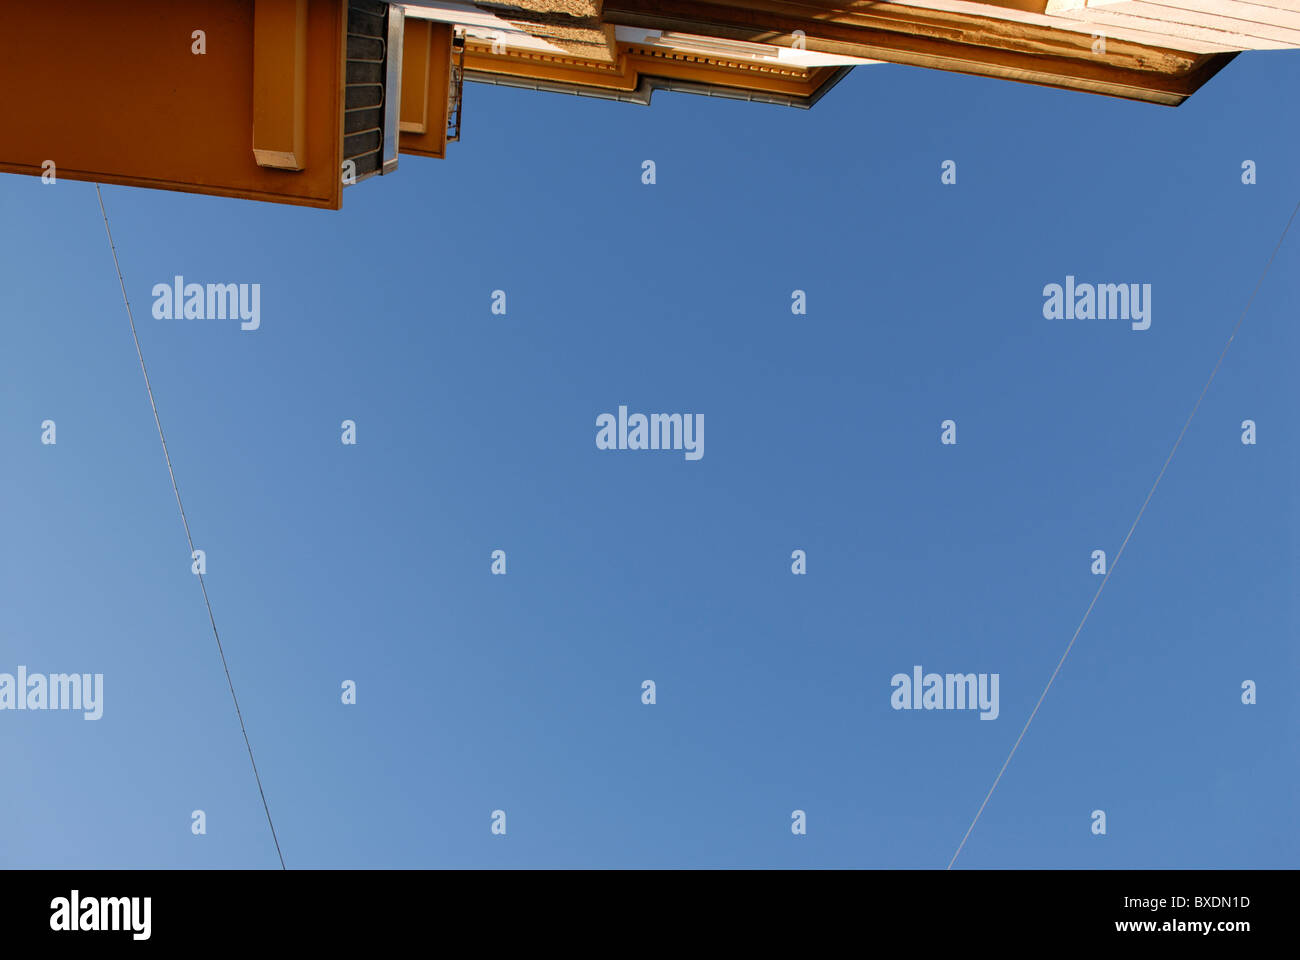 WIRED BLUE SKY ABSTRACT - Stock Image